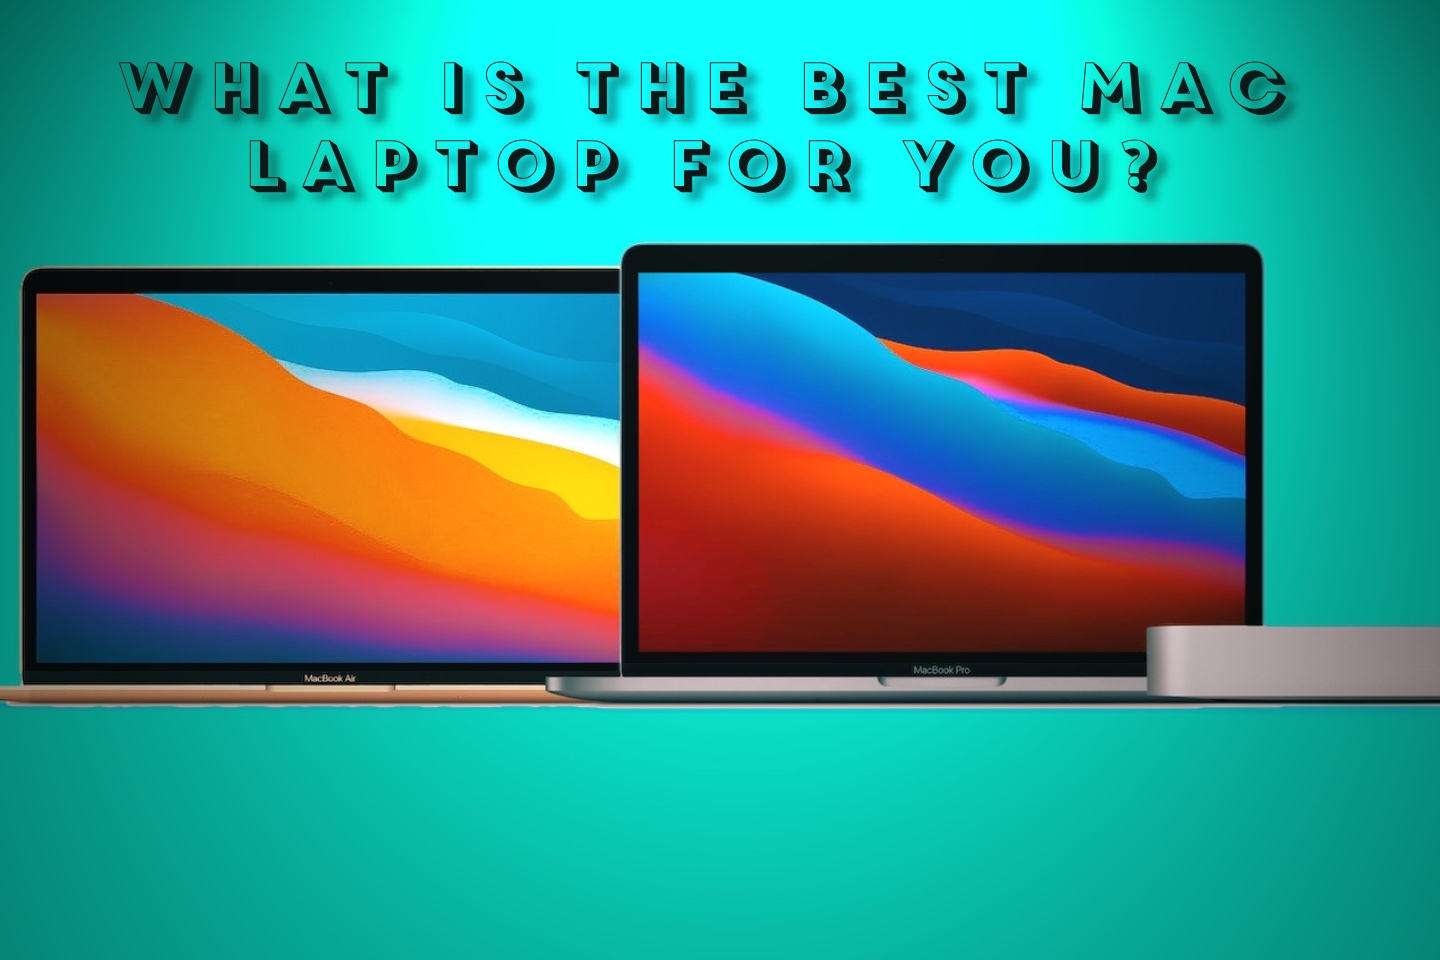 What is the Best Mac Laptop for You? best mac laptop for video editing, best mac laptop for college, best mac laptop for gaming,best macbook for students,